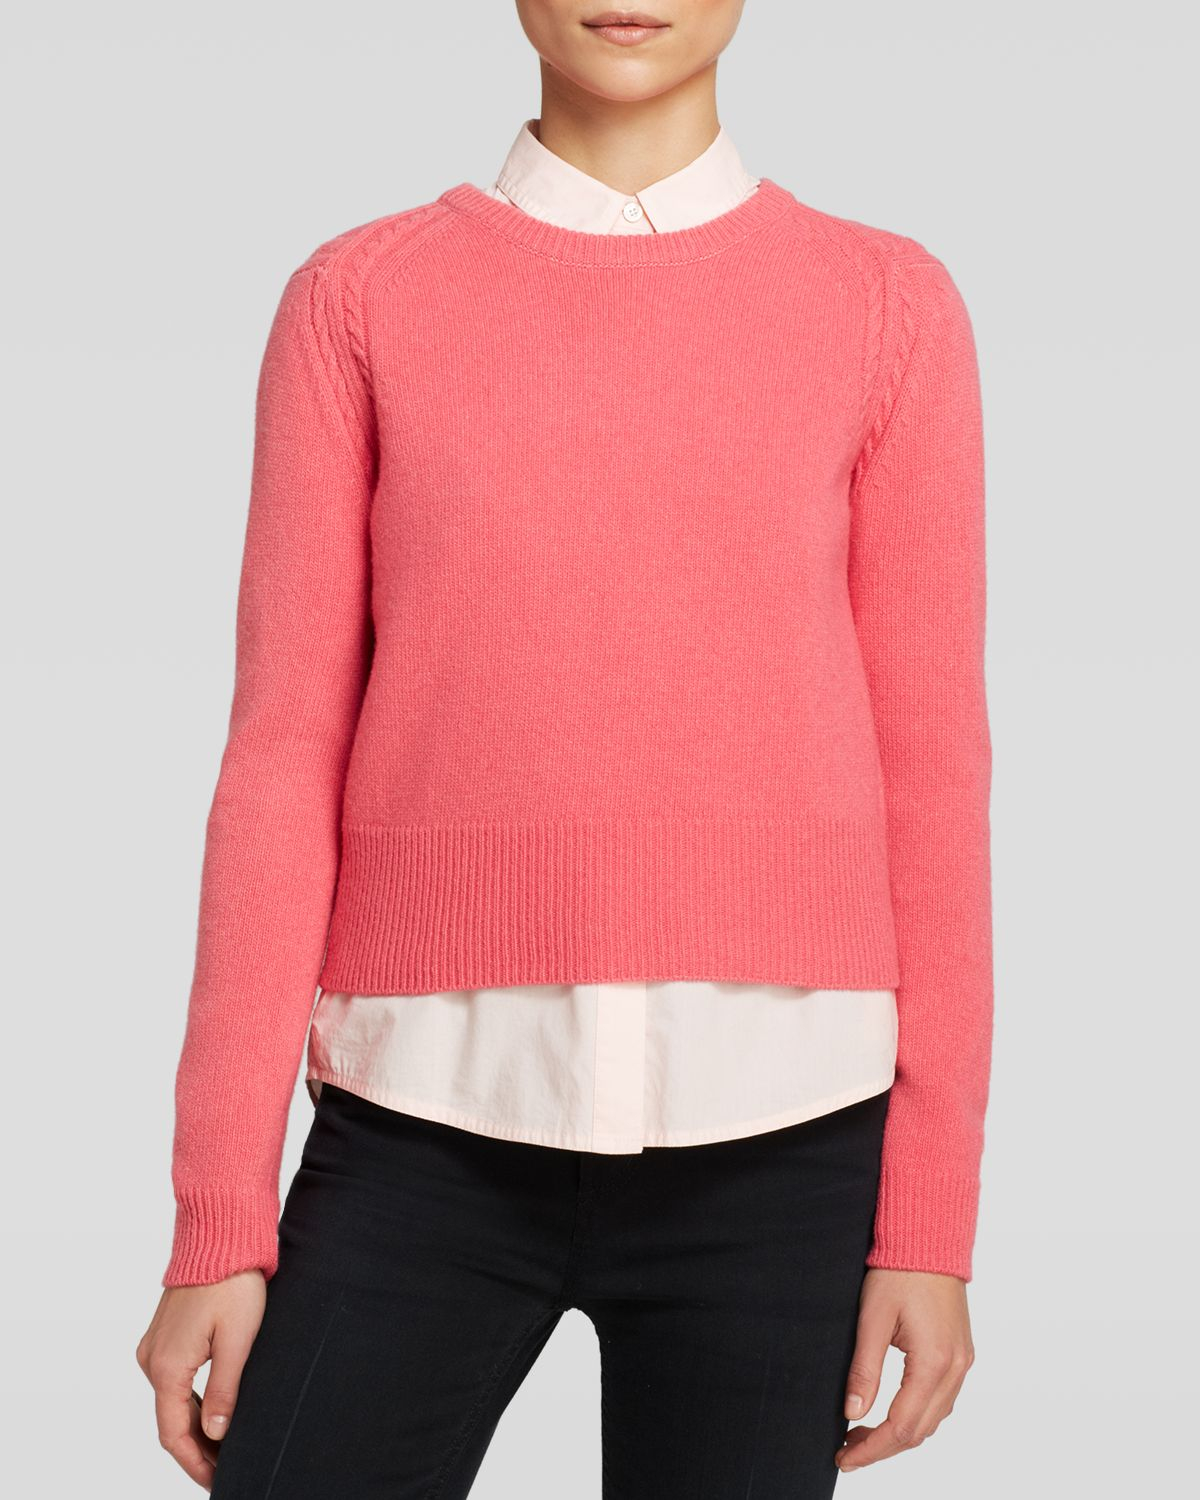 marc by marc jacobs sweater iris wool in pink lyst. Black Bedroom Furniture Sets. Home Design Ideas